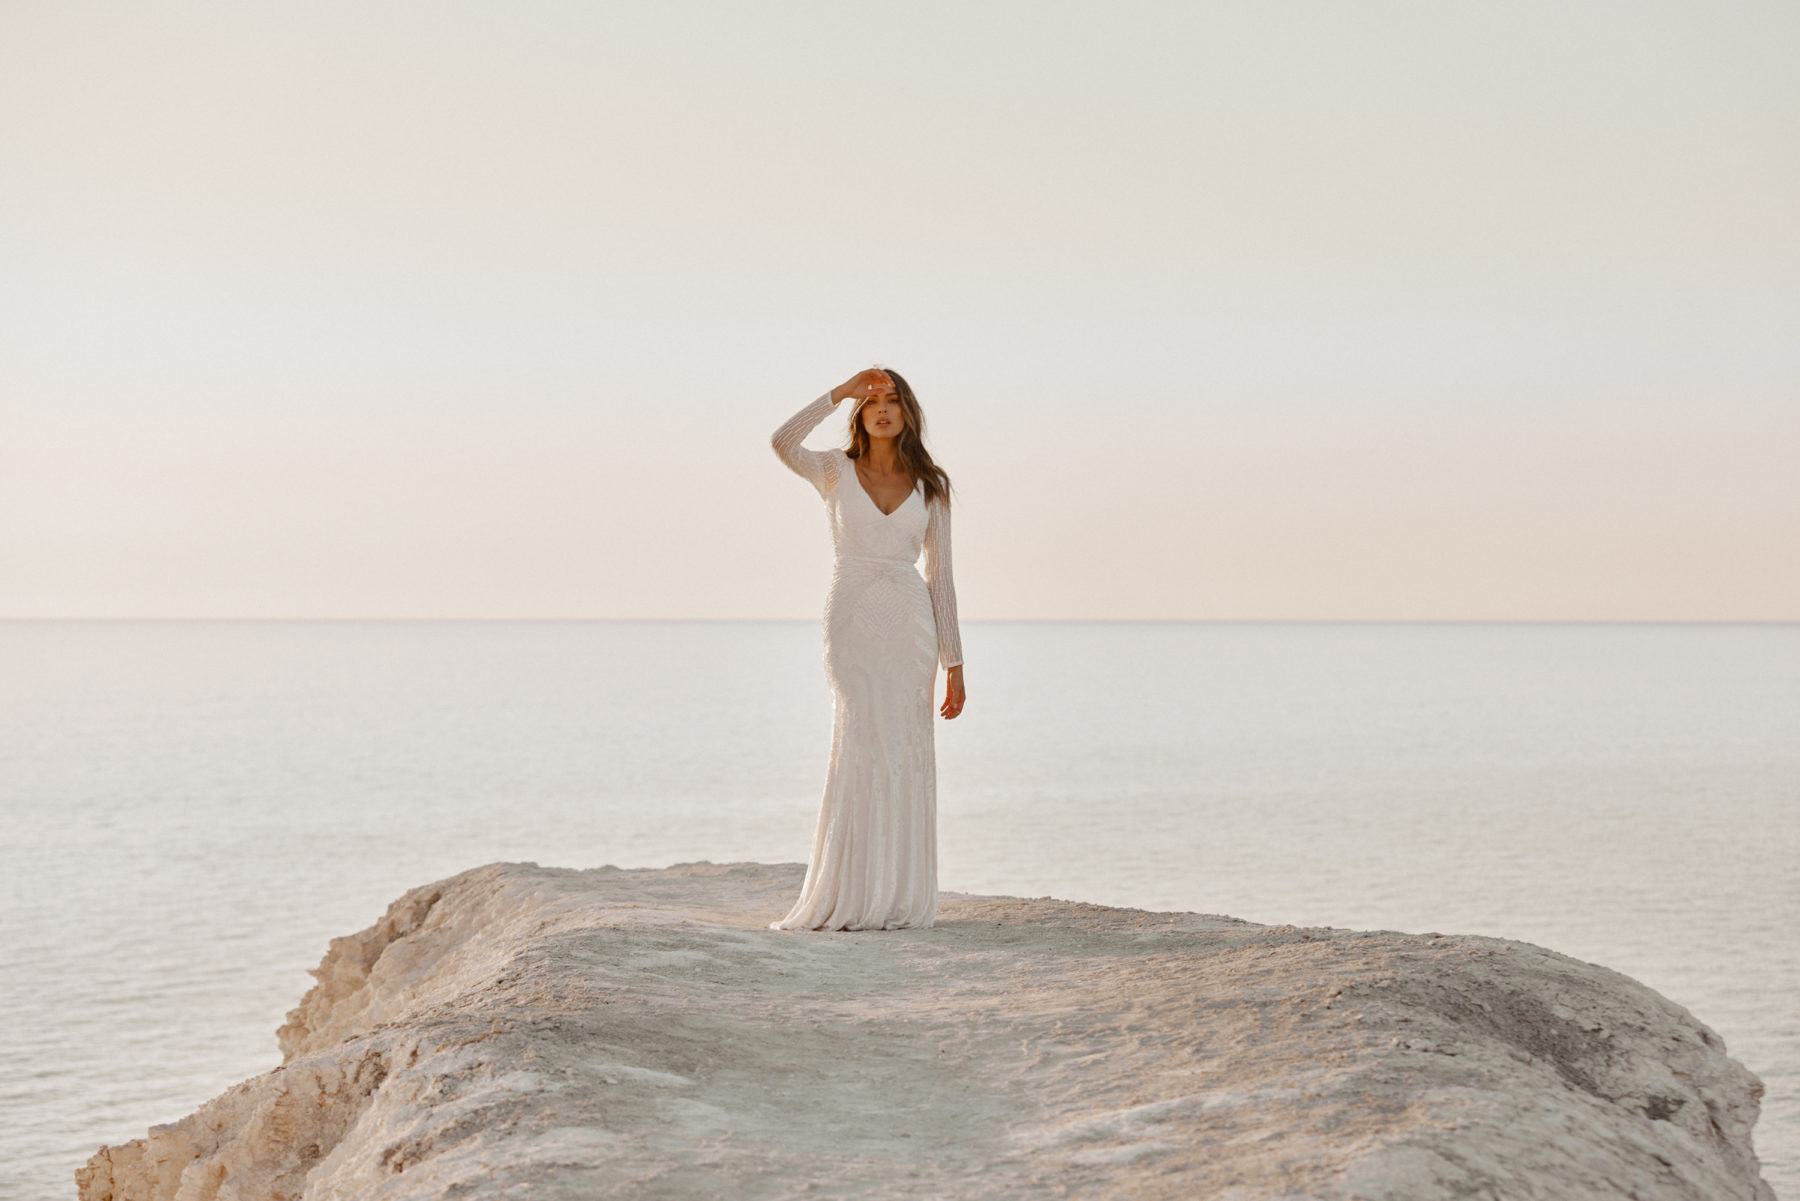 Perry-Karen Willis Holmes-LUXE 21-Campaign21